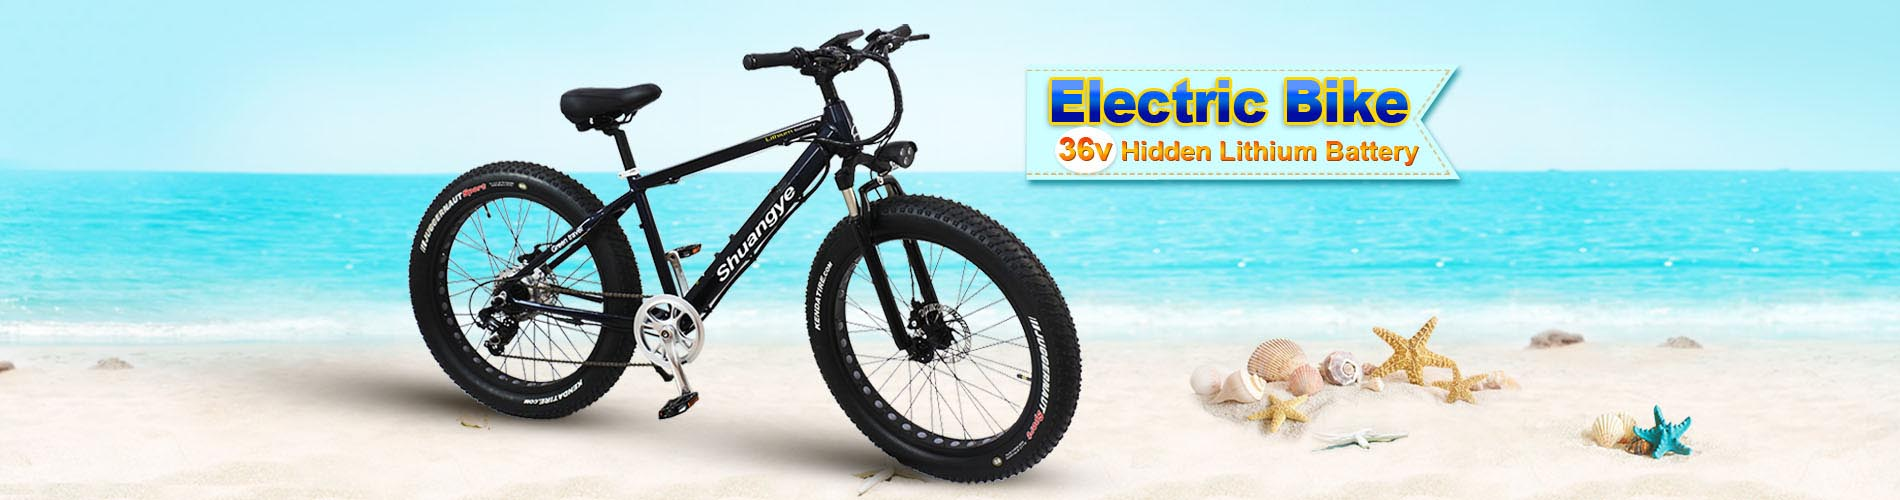 touring comfortable best electric bicycle